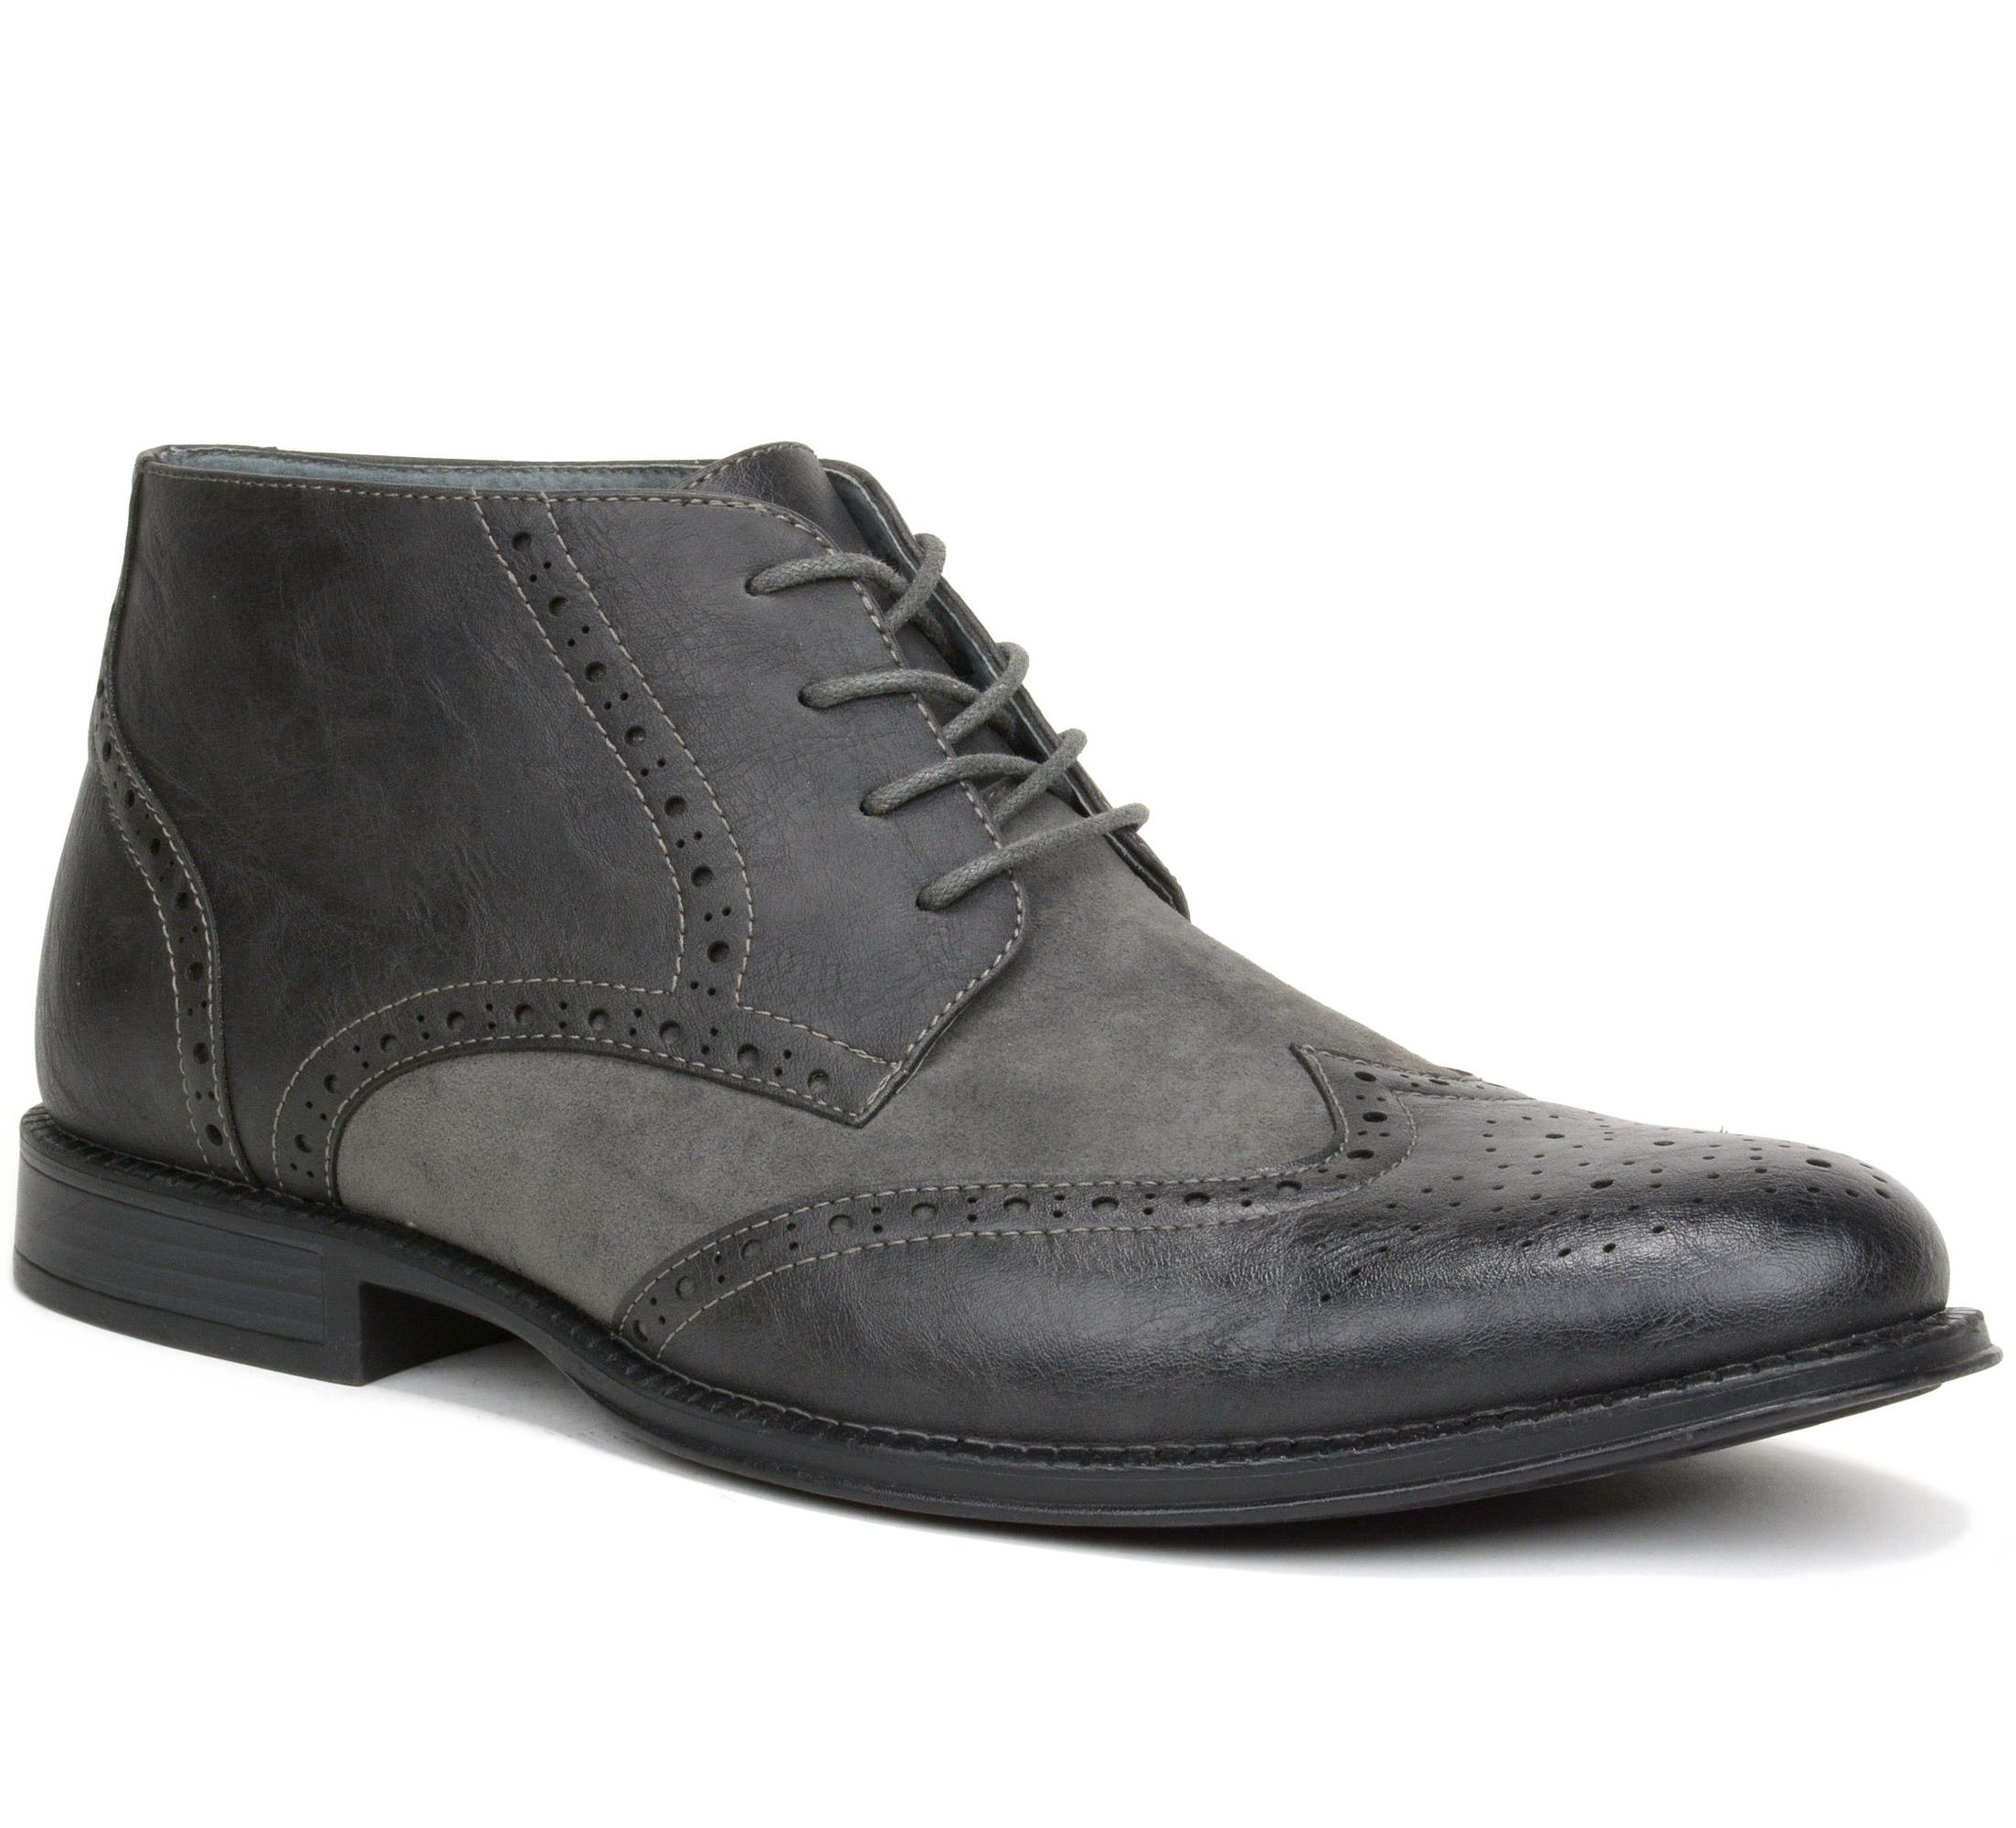 alpine swiss Men's Geneva Ankle Boots Brogue Wing Tip Dress Shoes, Gray, Size 8